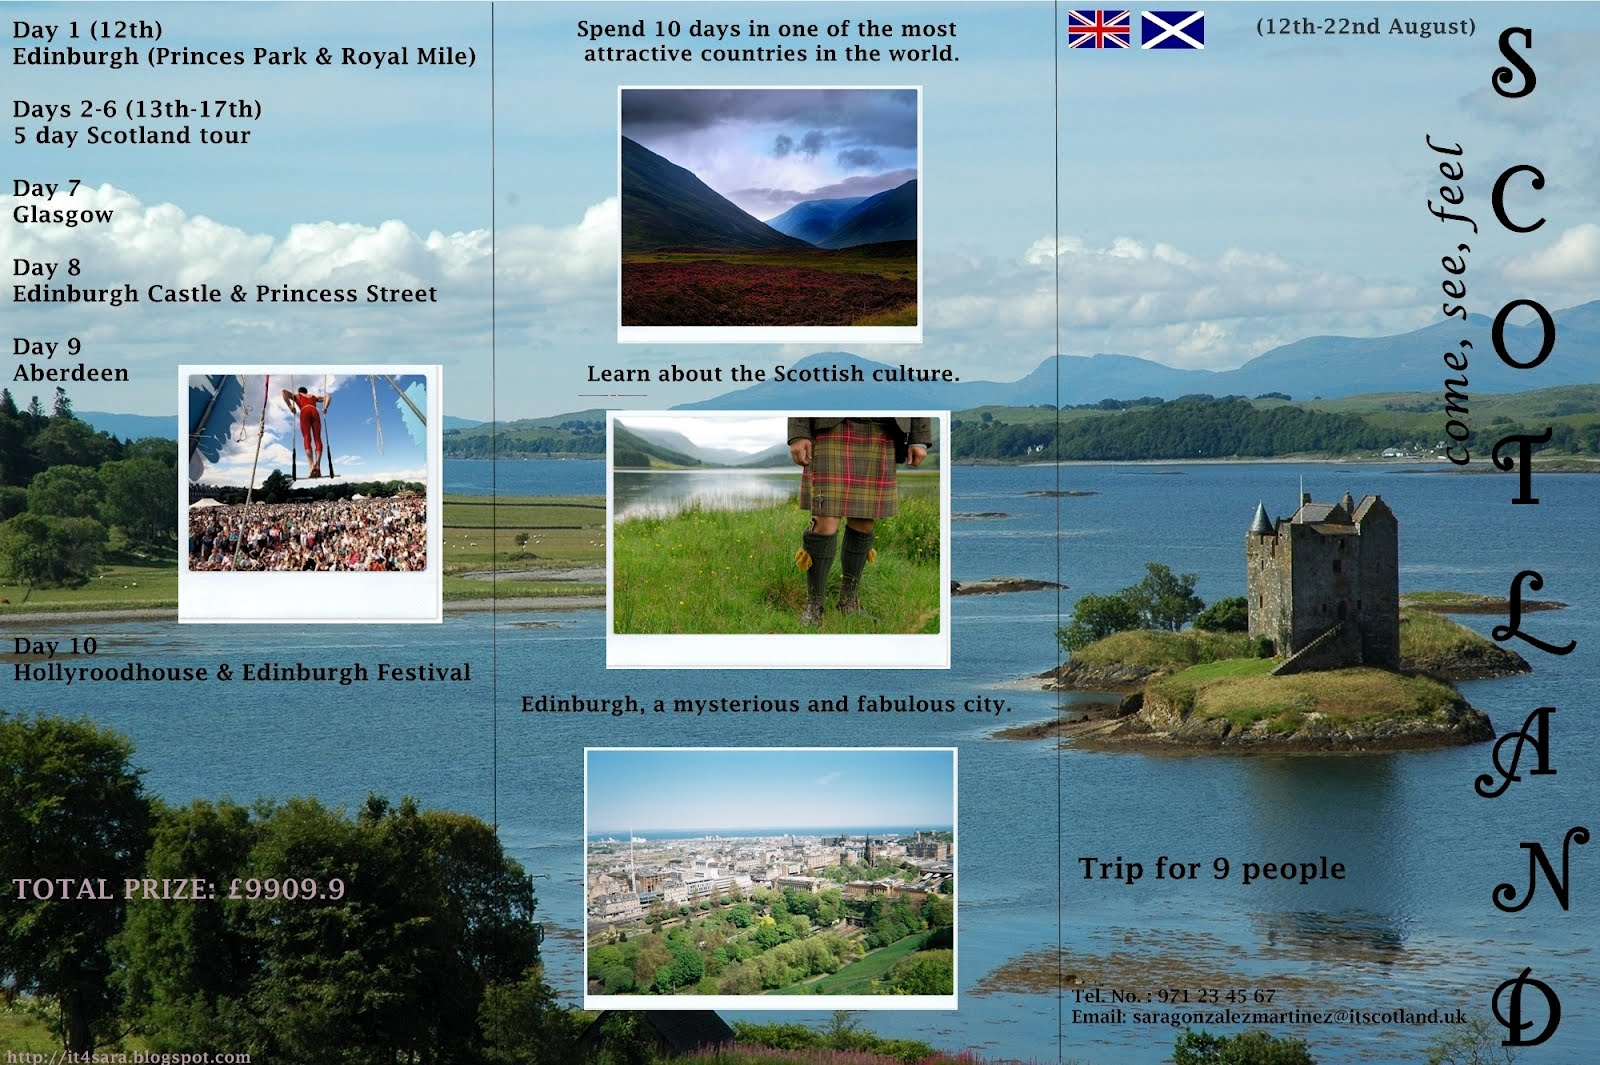 IT 4 Sara: Scotland Trip Brochure